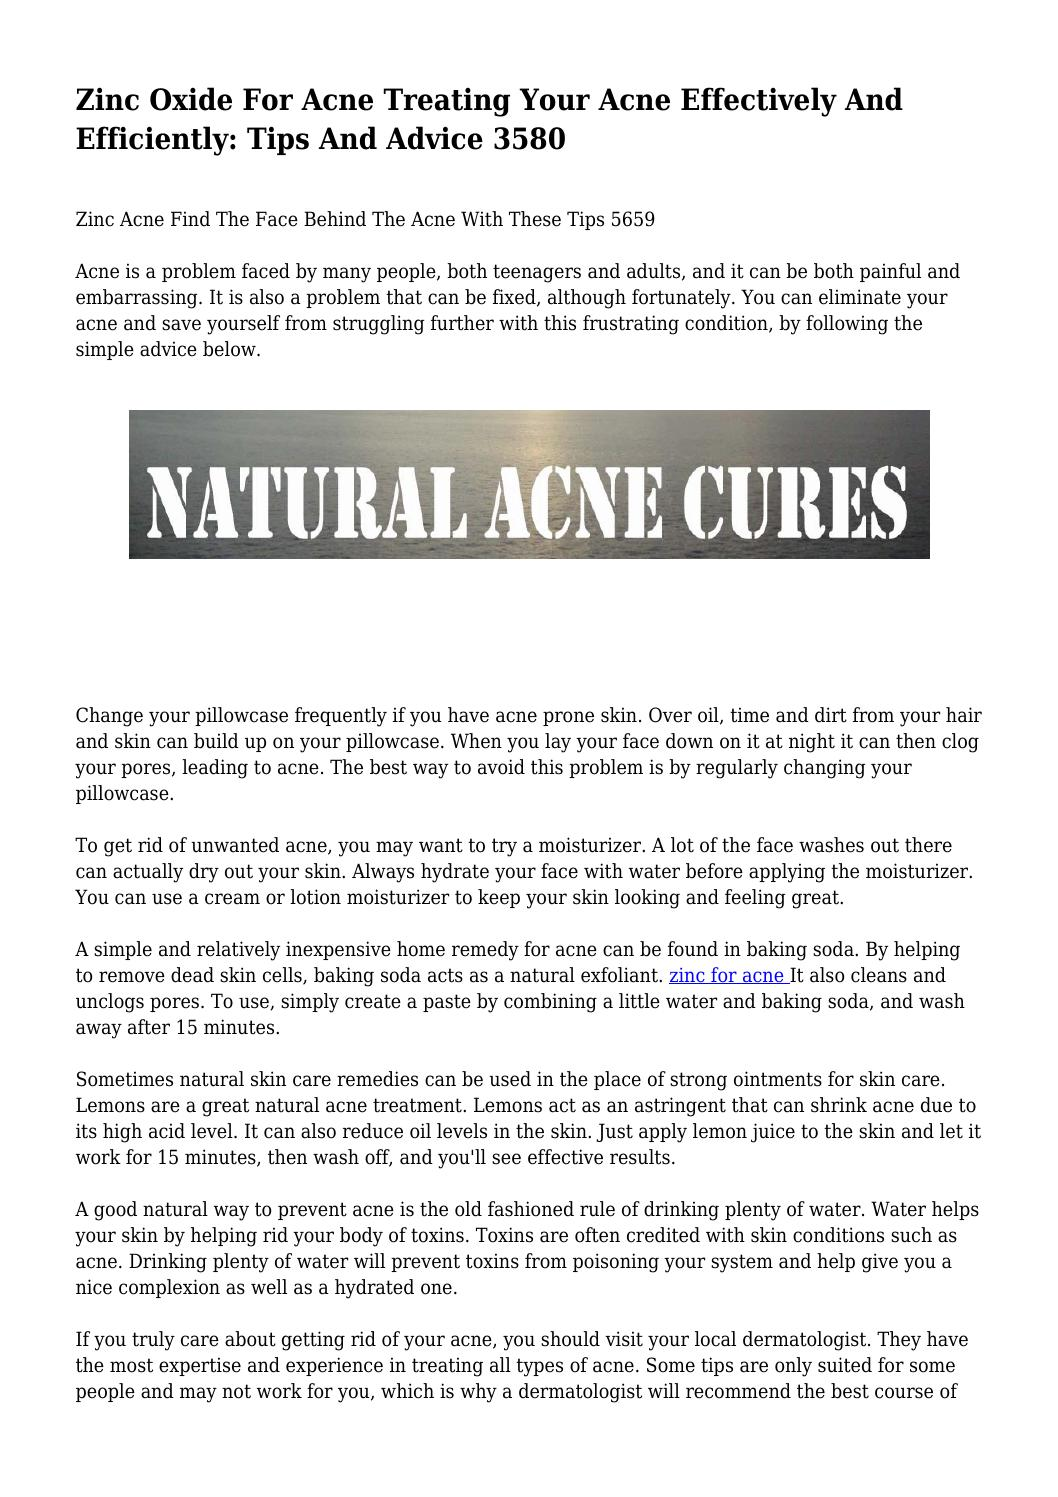 Zinc paste: simply and effectively get rid of skin problems 64